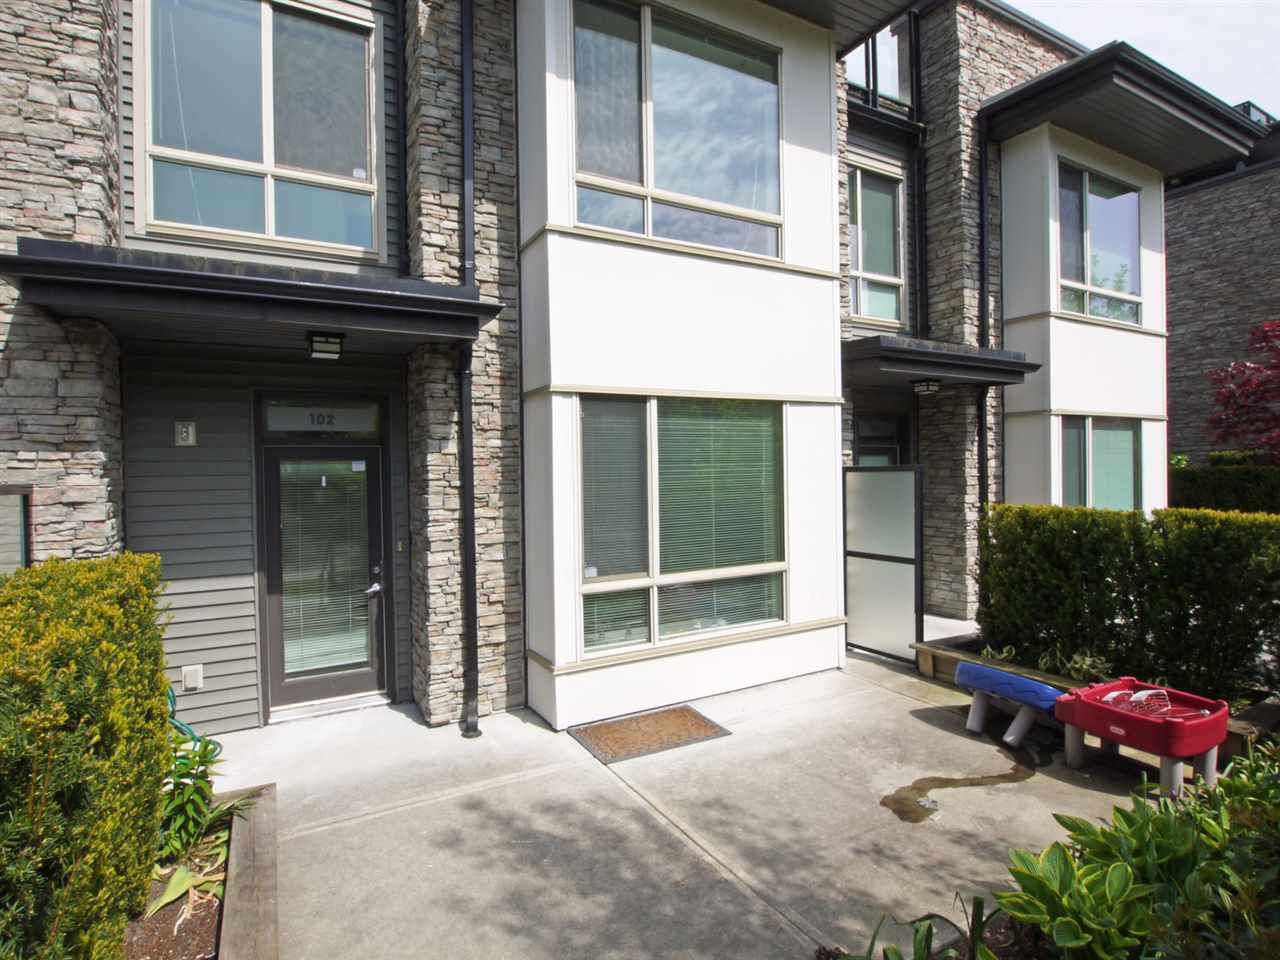 Main Photo: 102 7418 BYRNEPARK WALK in Burnaby: South Slope Condo for sale (Burnaby South)  : MLS®# R2072902